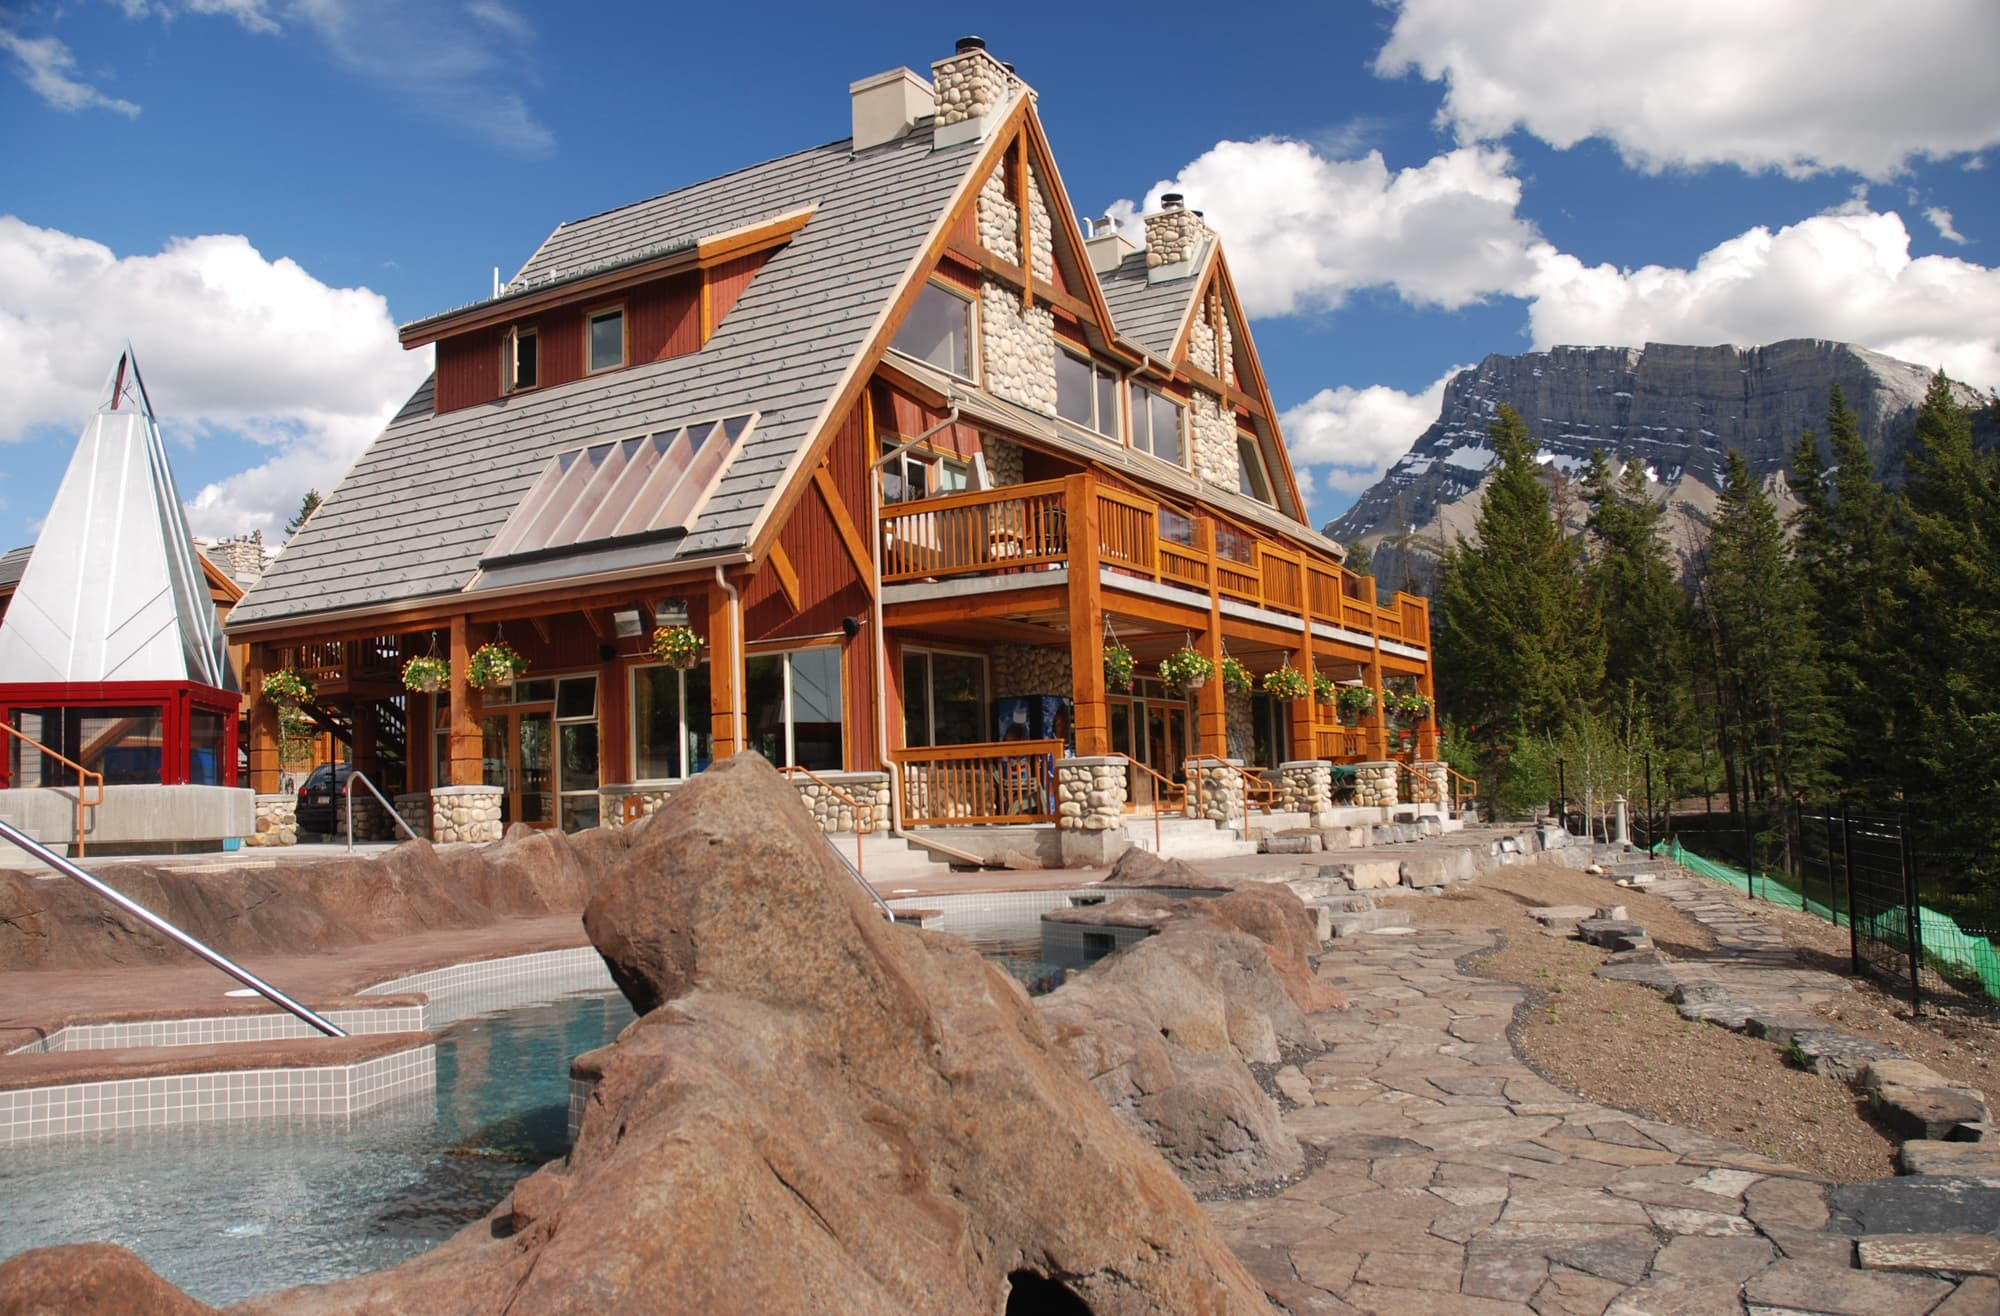 The Hidden Ridge Hotel offers condo-like accommodations for families